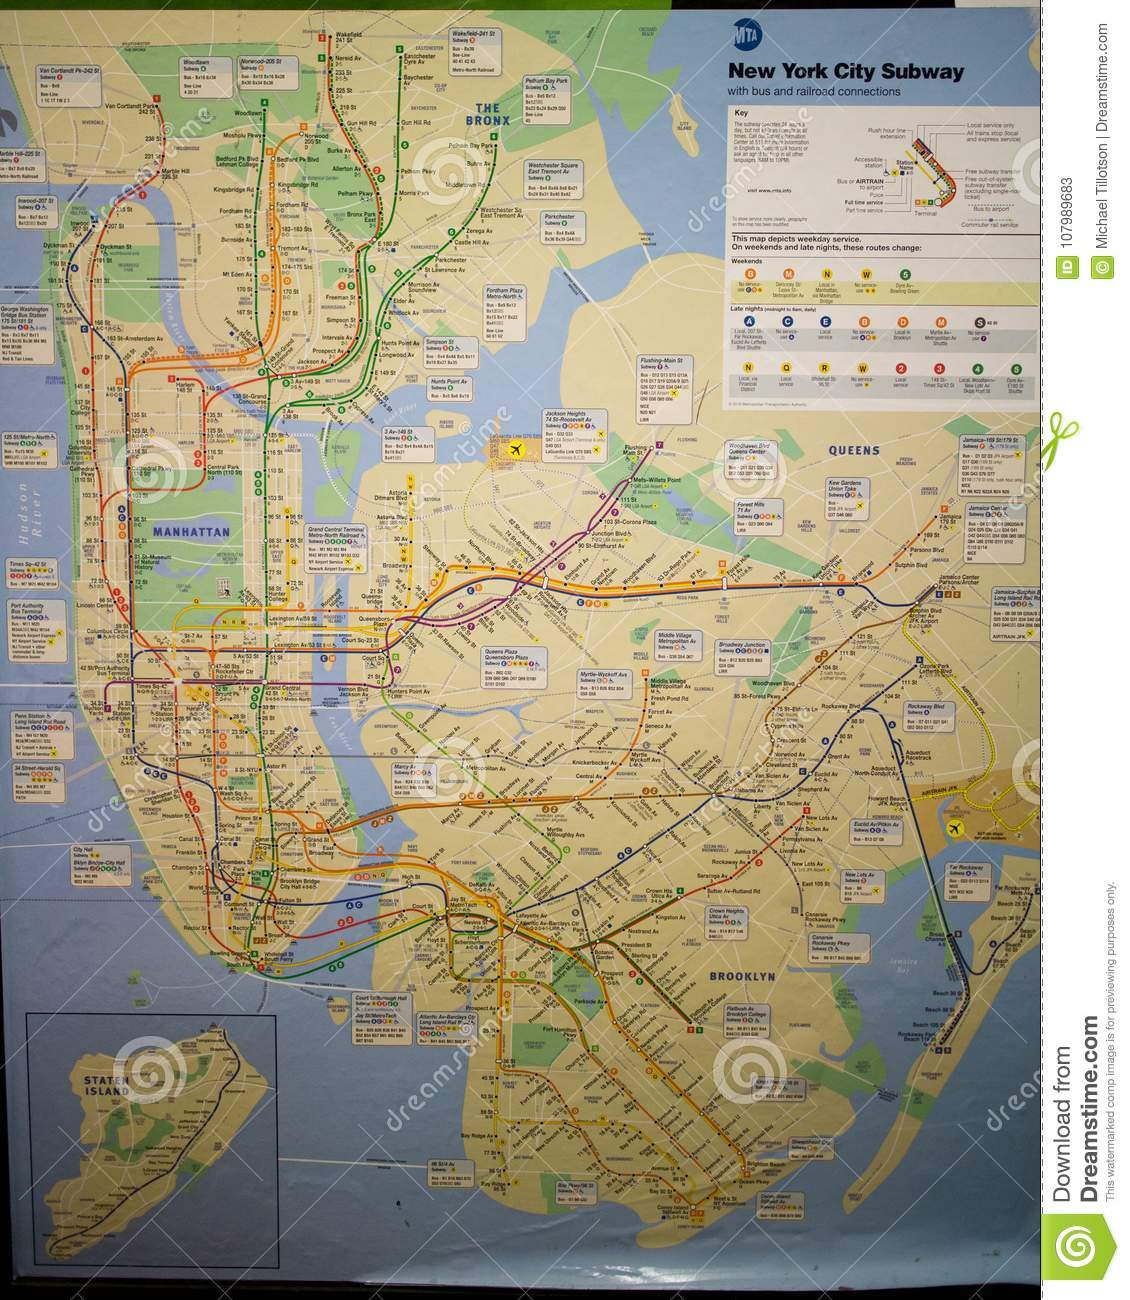 Map Of New York City Subway Editorial Stock Photo - Image of